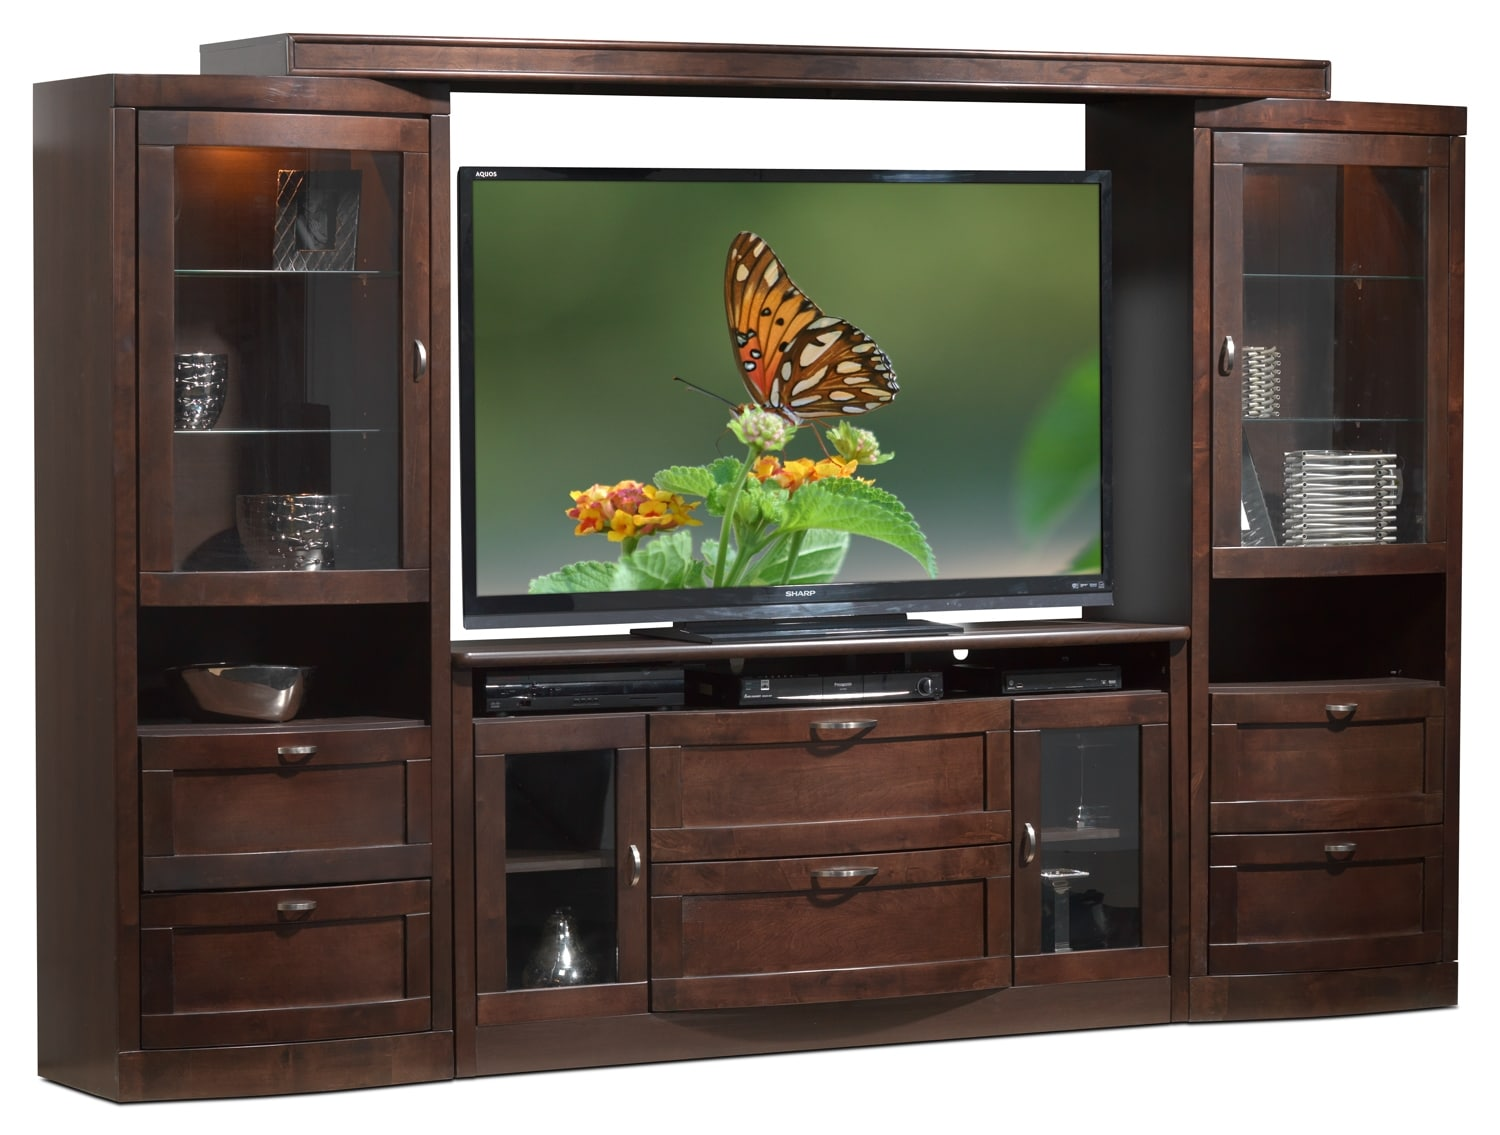 Huxley 4 Pc. Wall Entertainment Unit - Java Maple